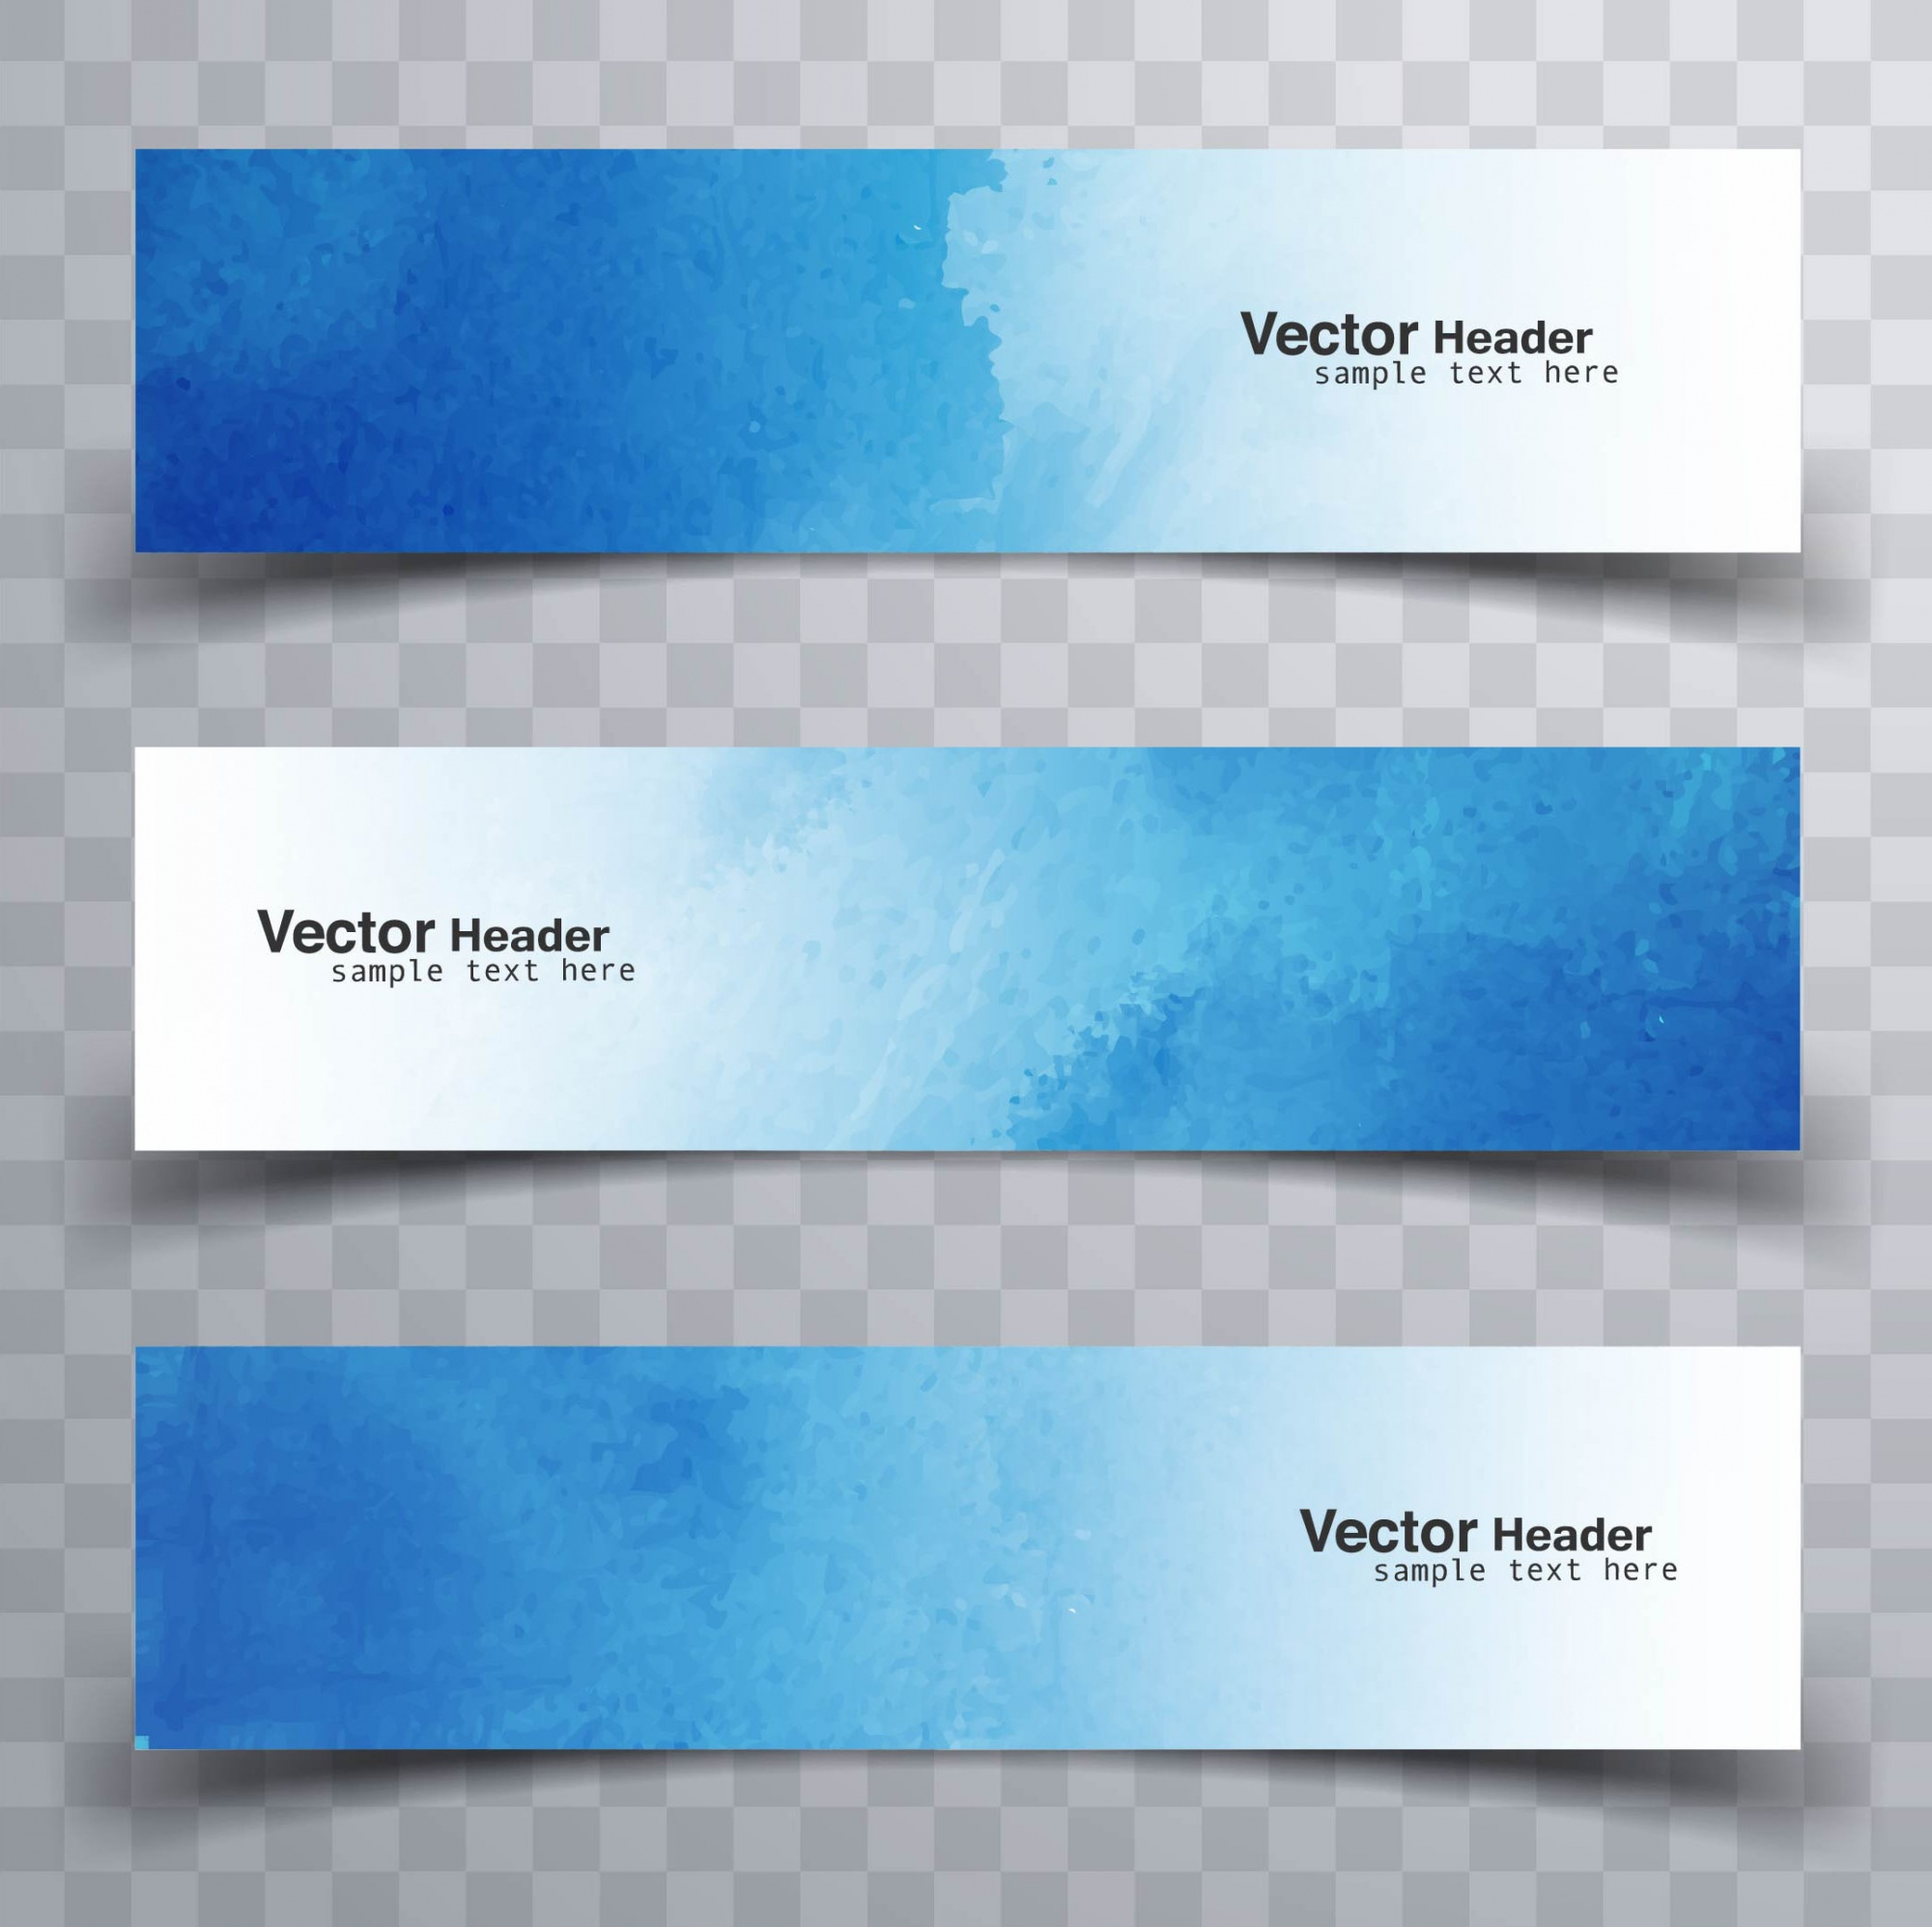 Waterverf banners